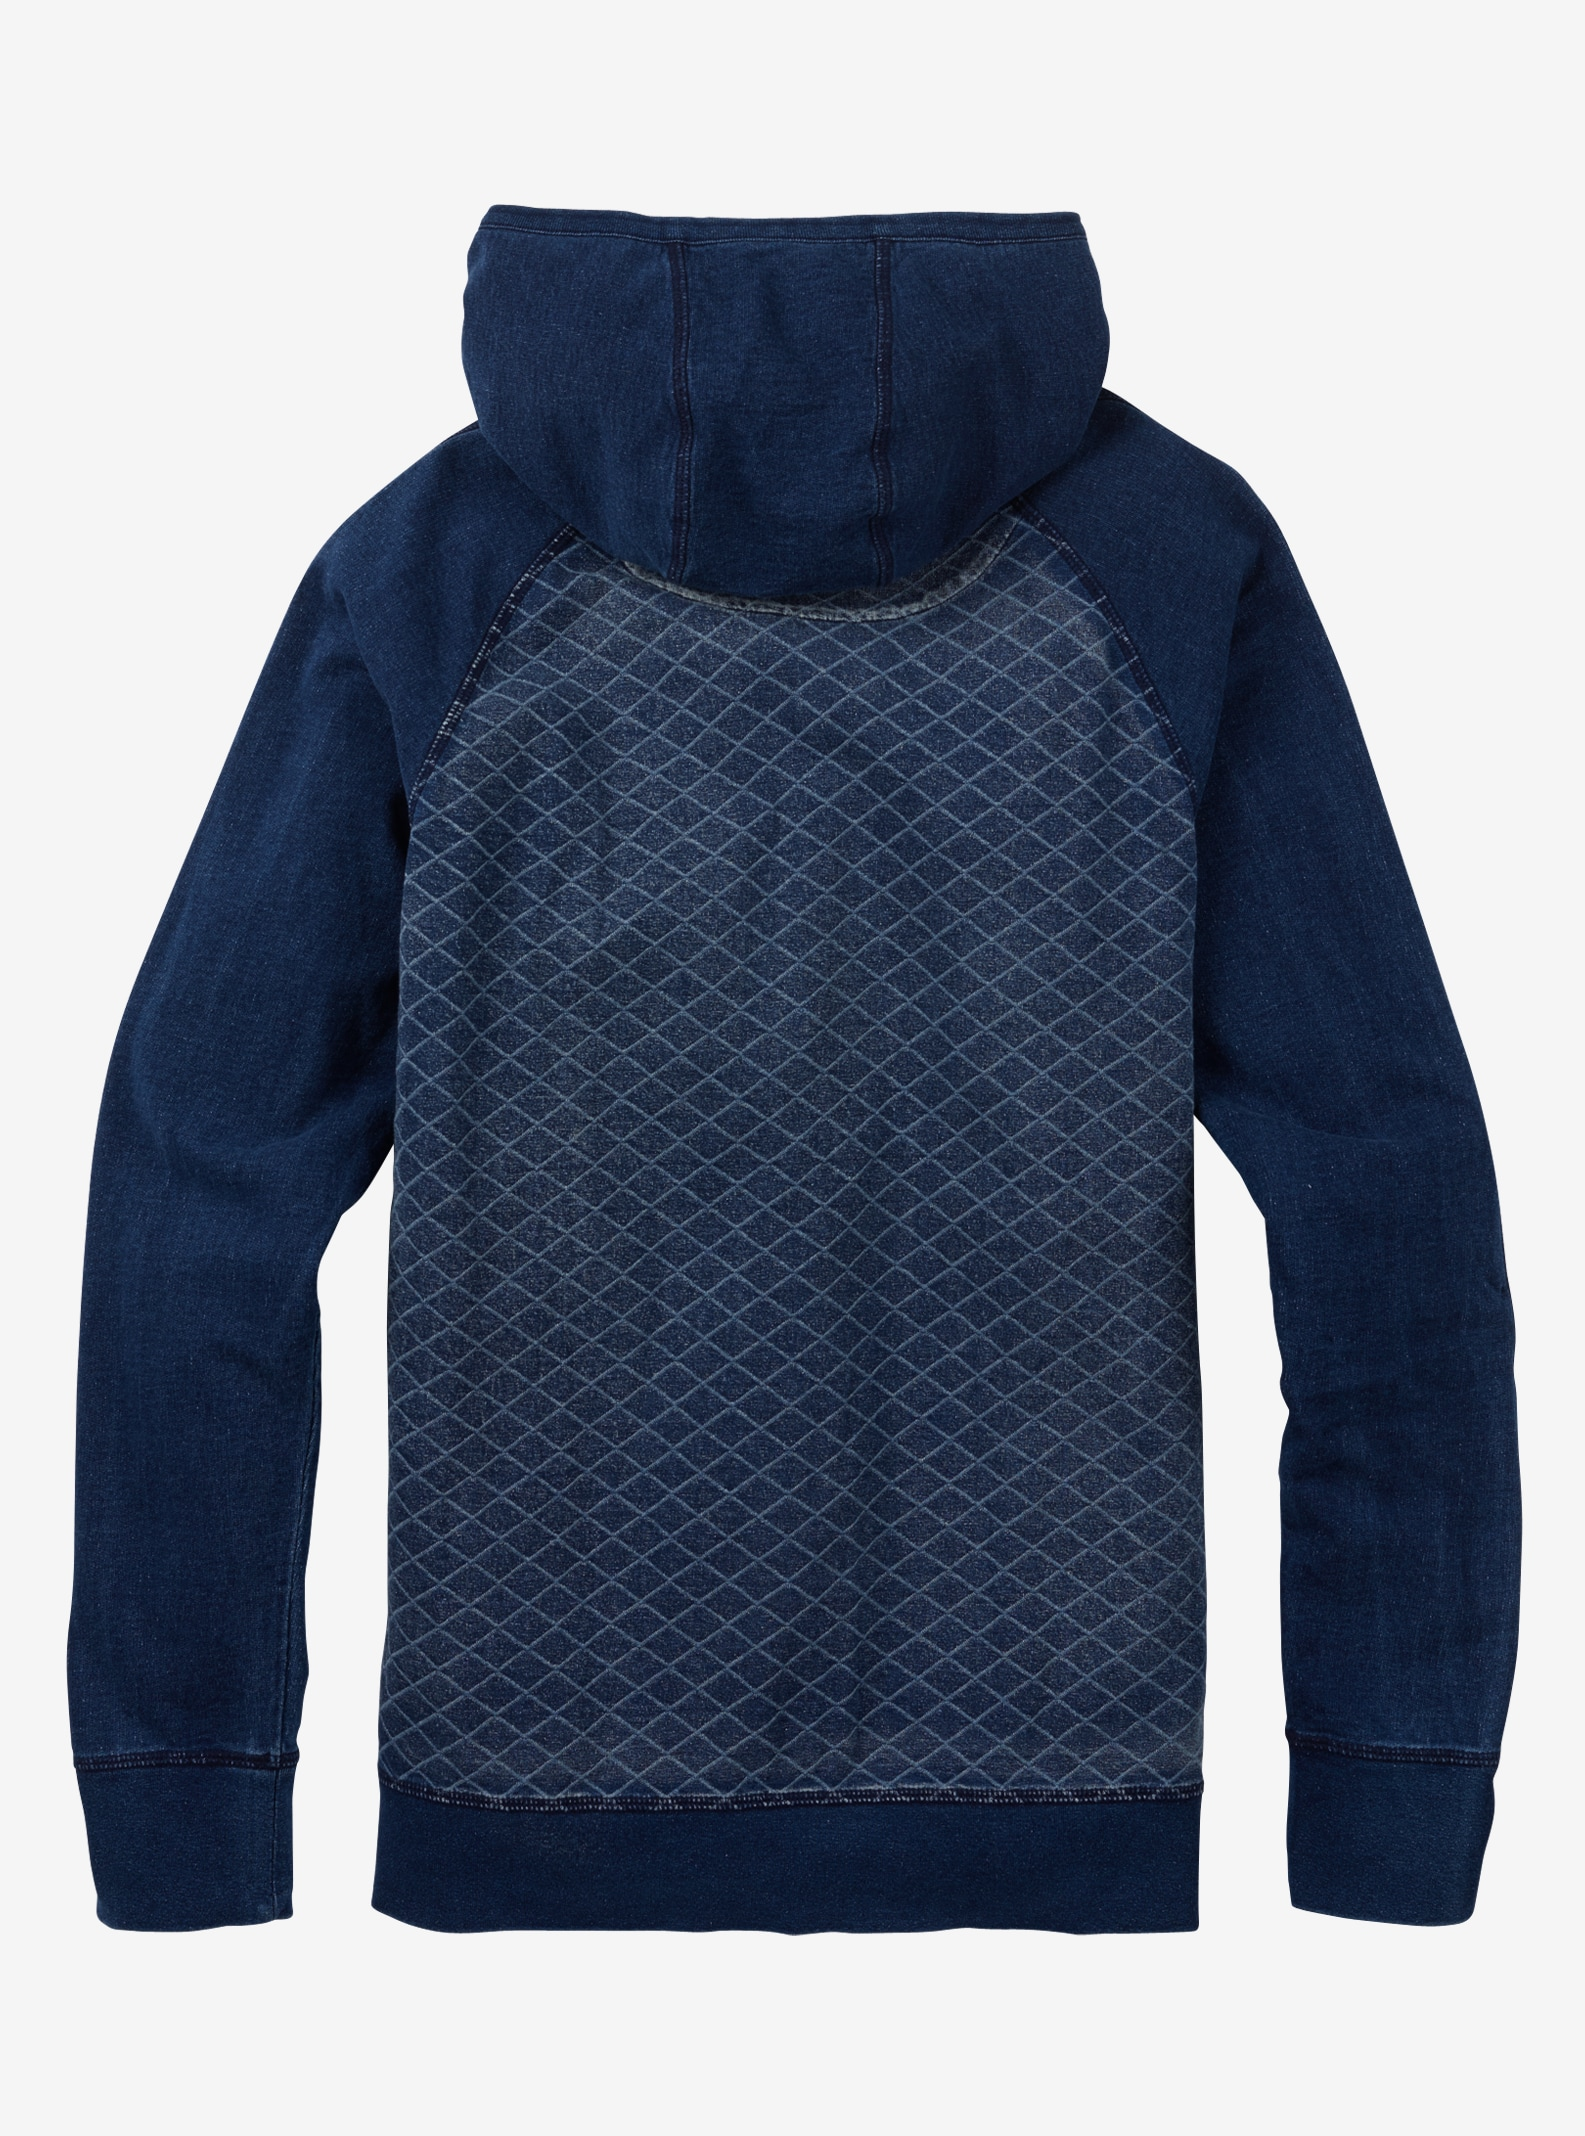 Burton Monhegan Fleece Pullover shown in Indigo